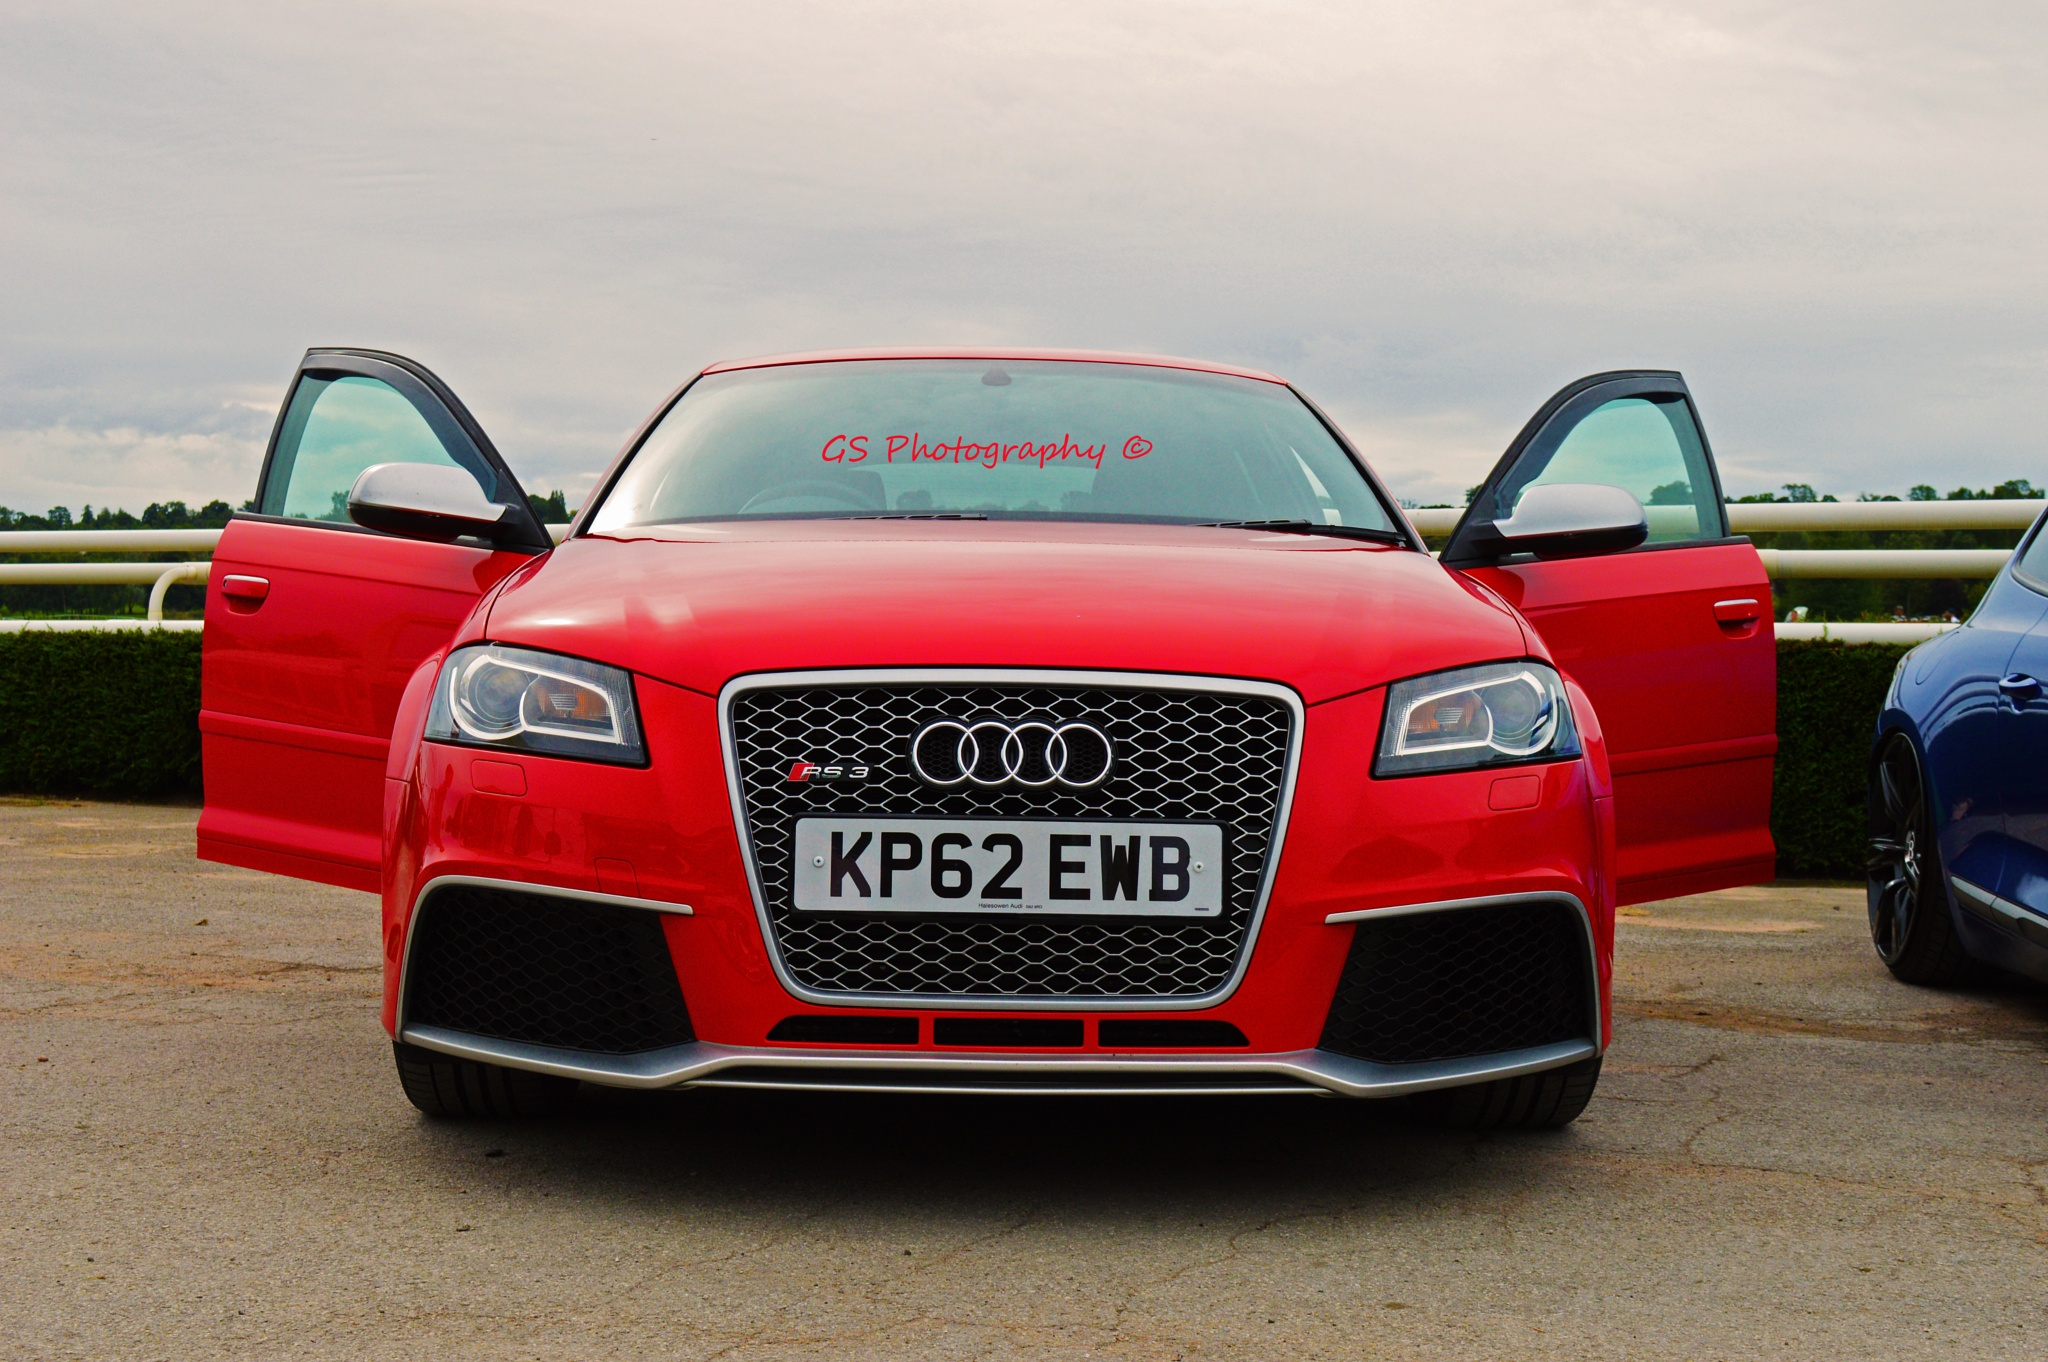 Audi RS3 by GeorgeSmith Photography